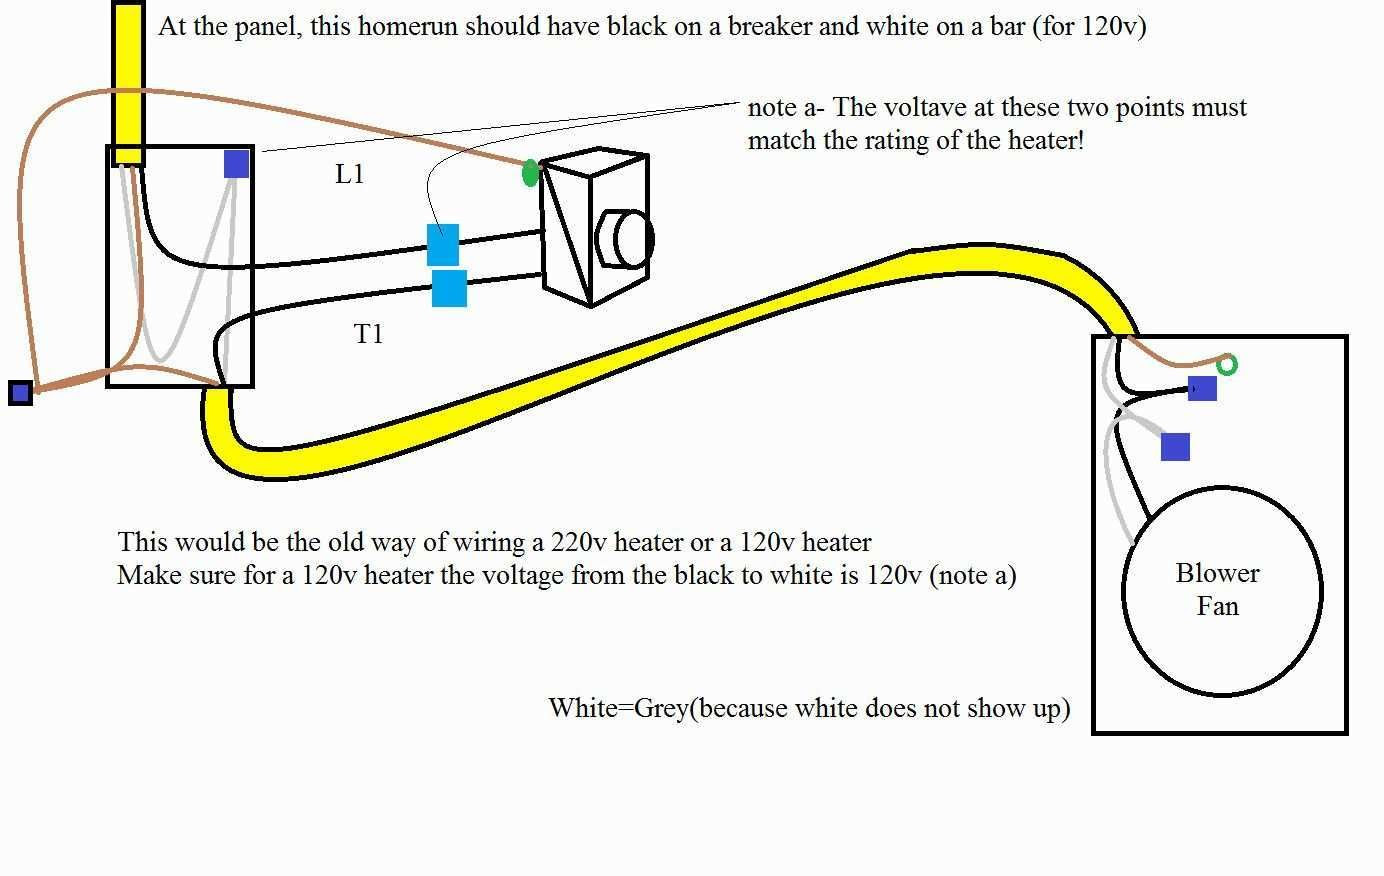 Diagram Fahrenheit Electric Baseboard Wiring Diagram Full Version Hd Quality Wiring Diagram Sitexdrema Scuoladipace It